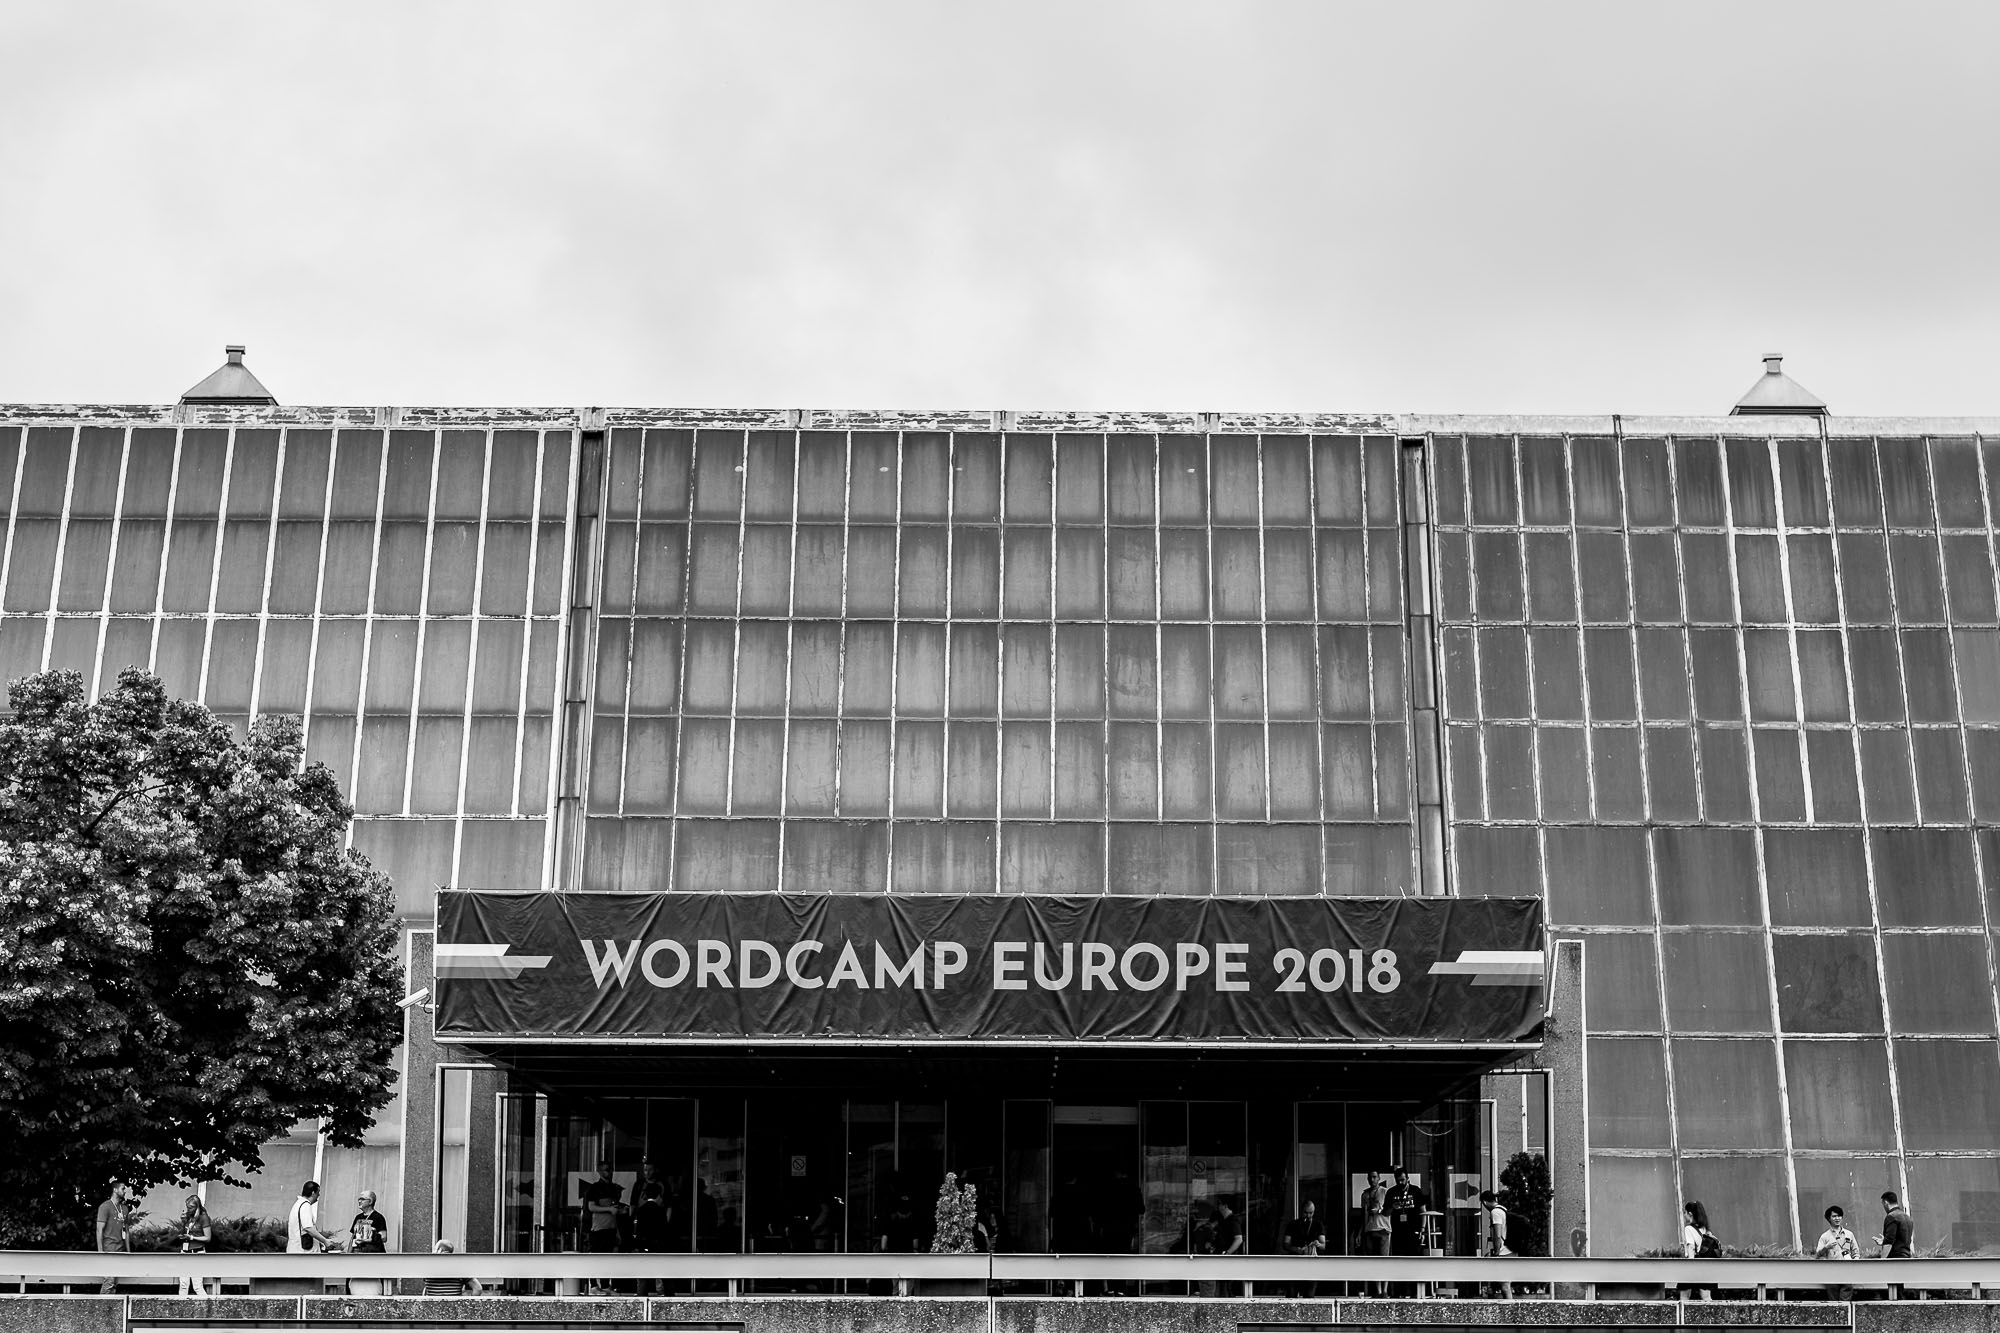 The entrance to Sava Center with a huge WordCamp banner